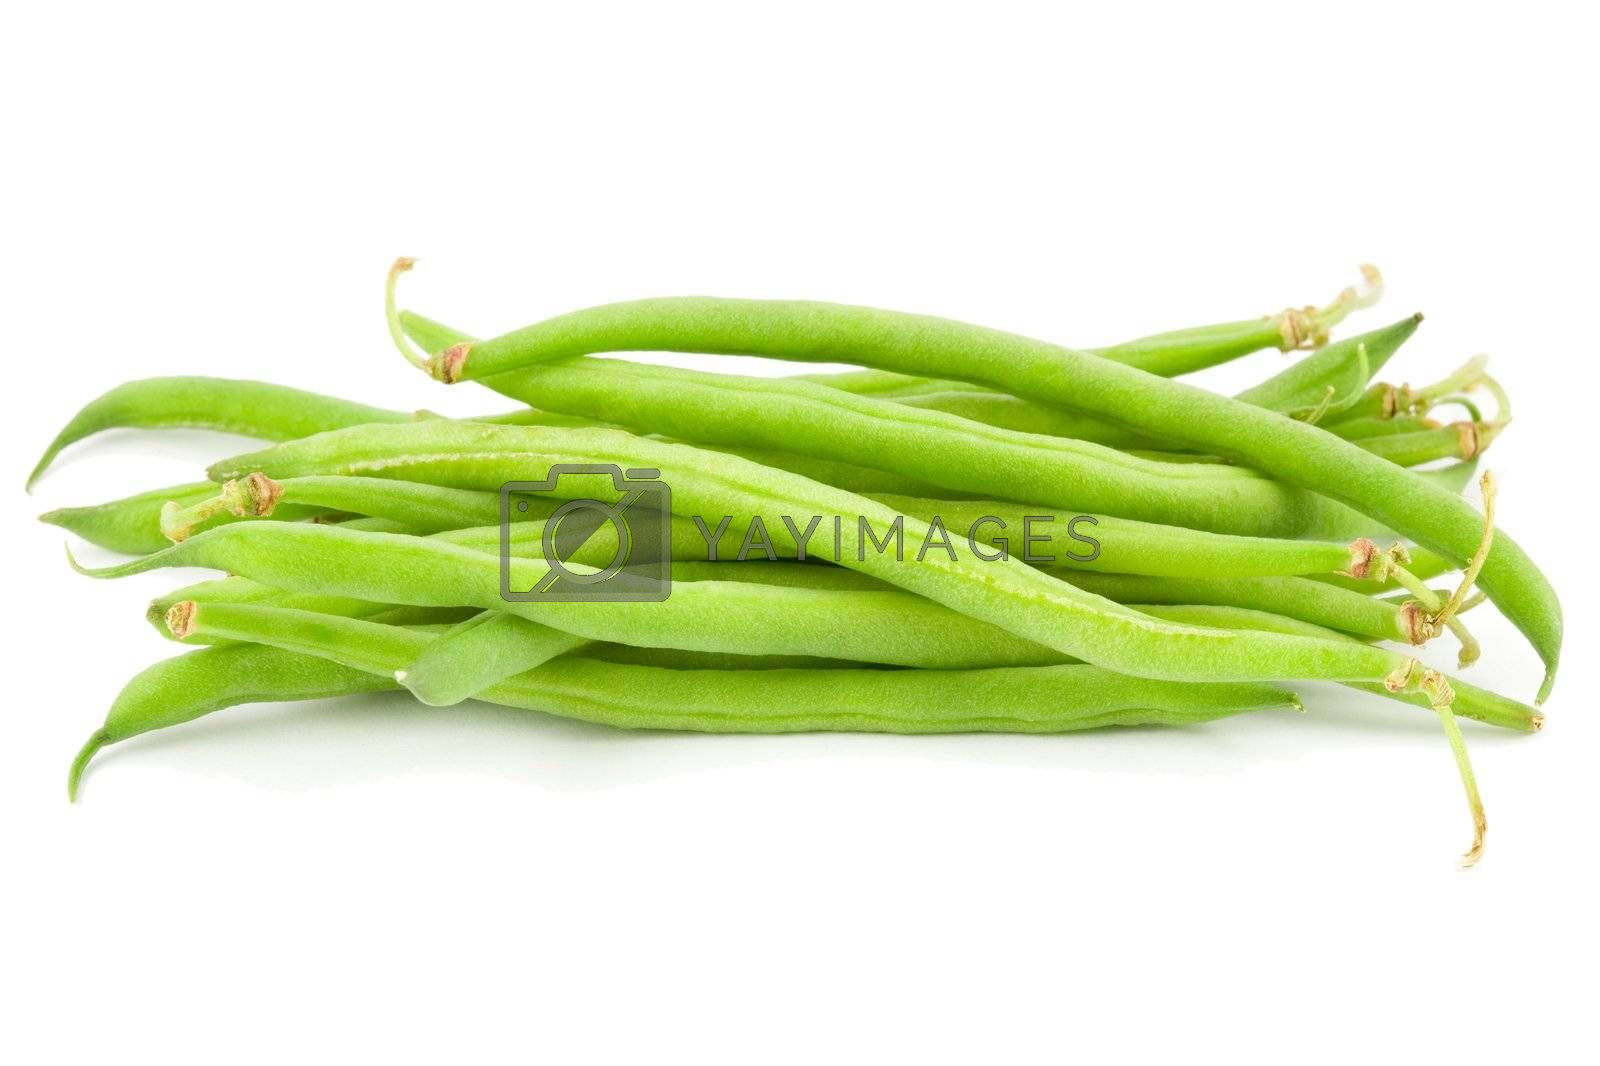 Royalty free image of green beans pile by Tilo